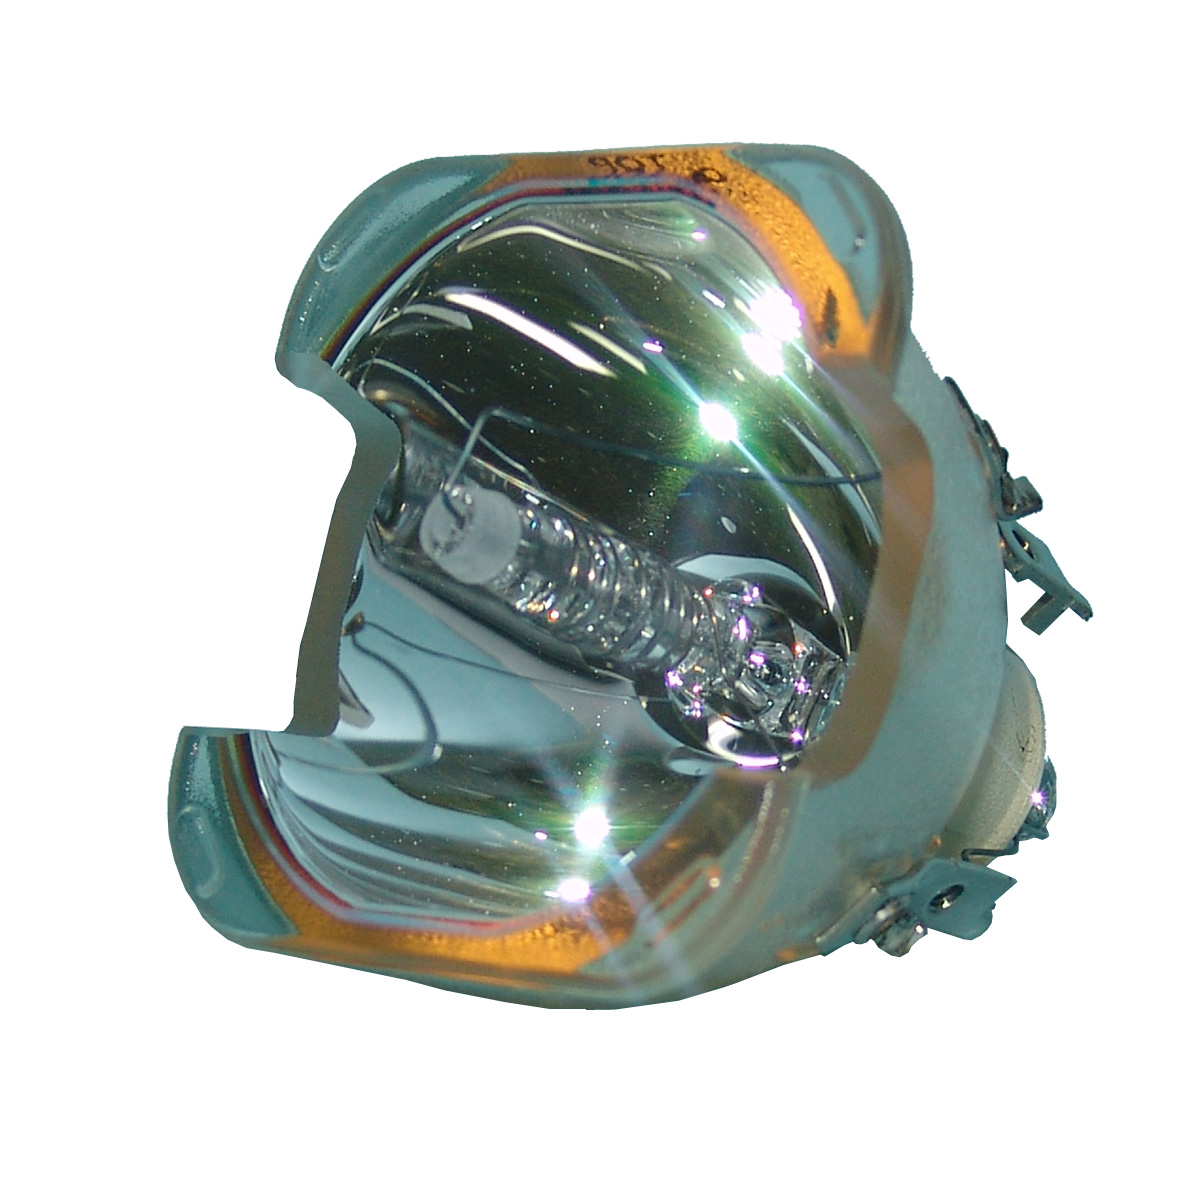 Original Osram Projector Lamp Replacement with Housing for Barco PHWX-81B - image 5 de 5